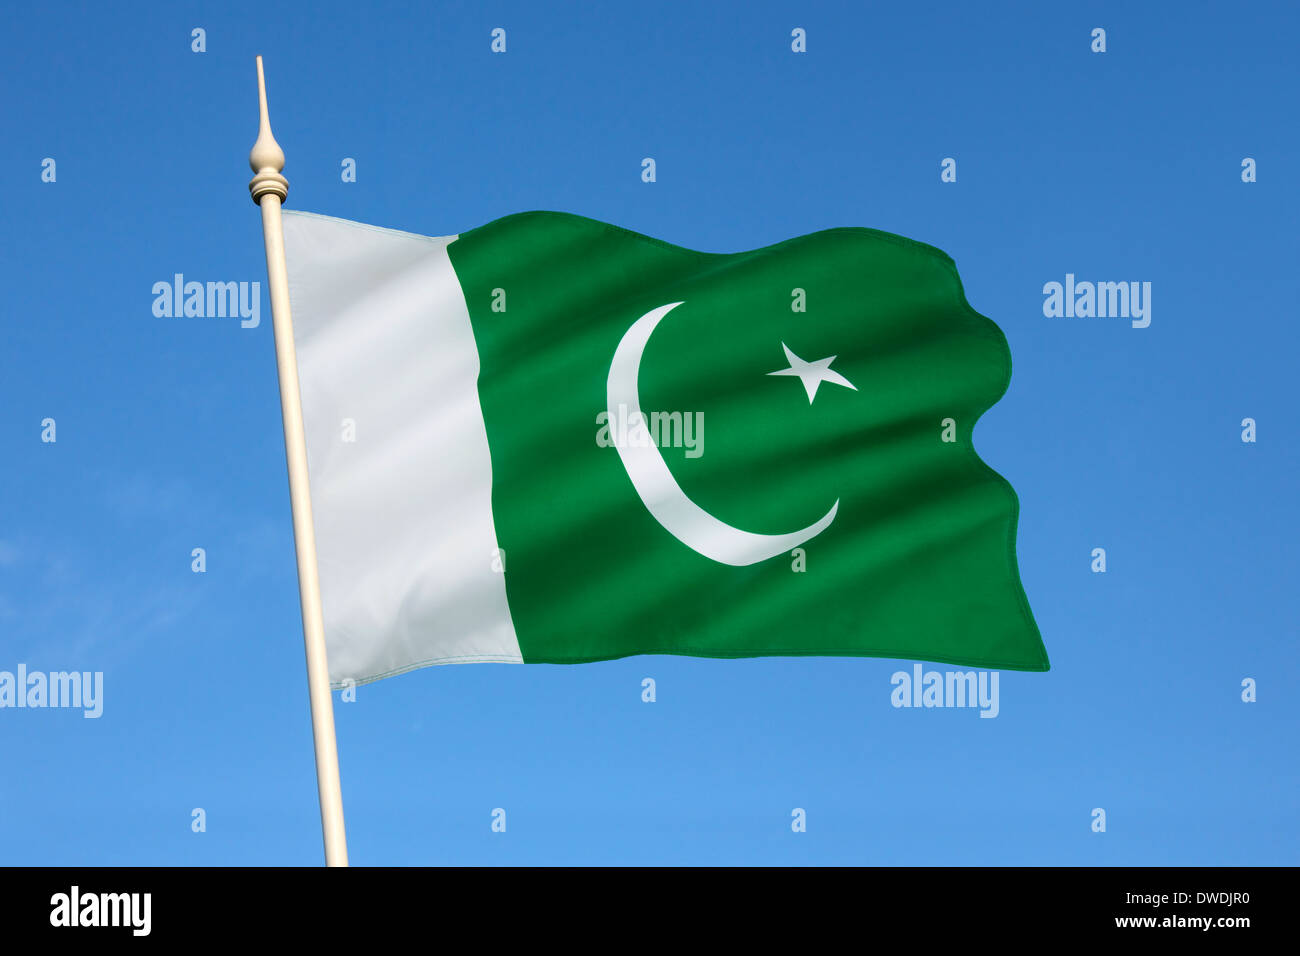 Flag of Pakistan - Stock Image